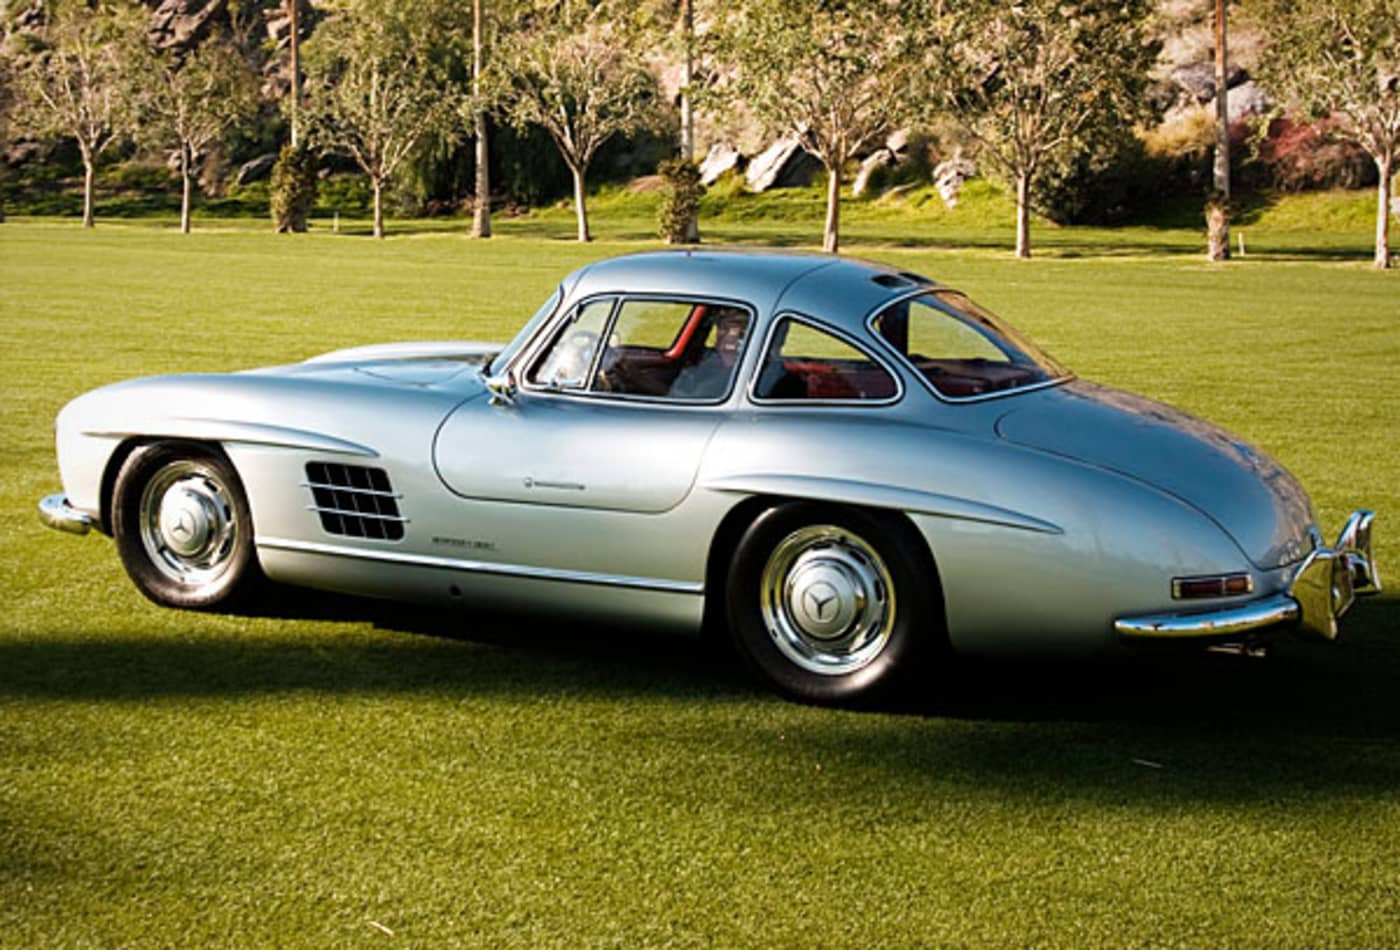 48705397 Mercedes-Benz-300SL-Top-10-Best-Looking-Cars-All-Time-CNBC.jpg